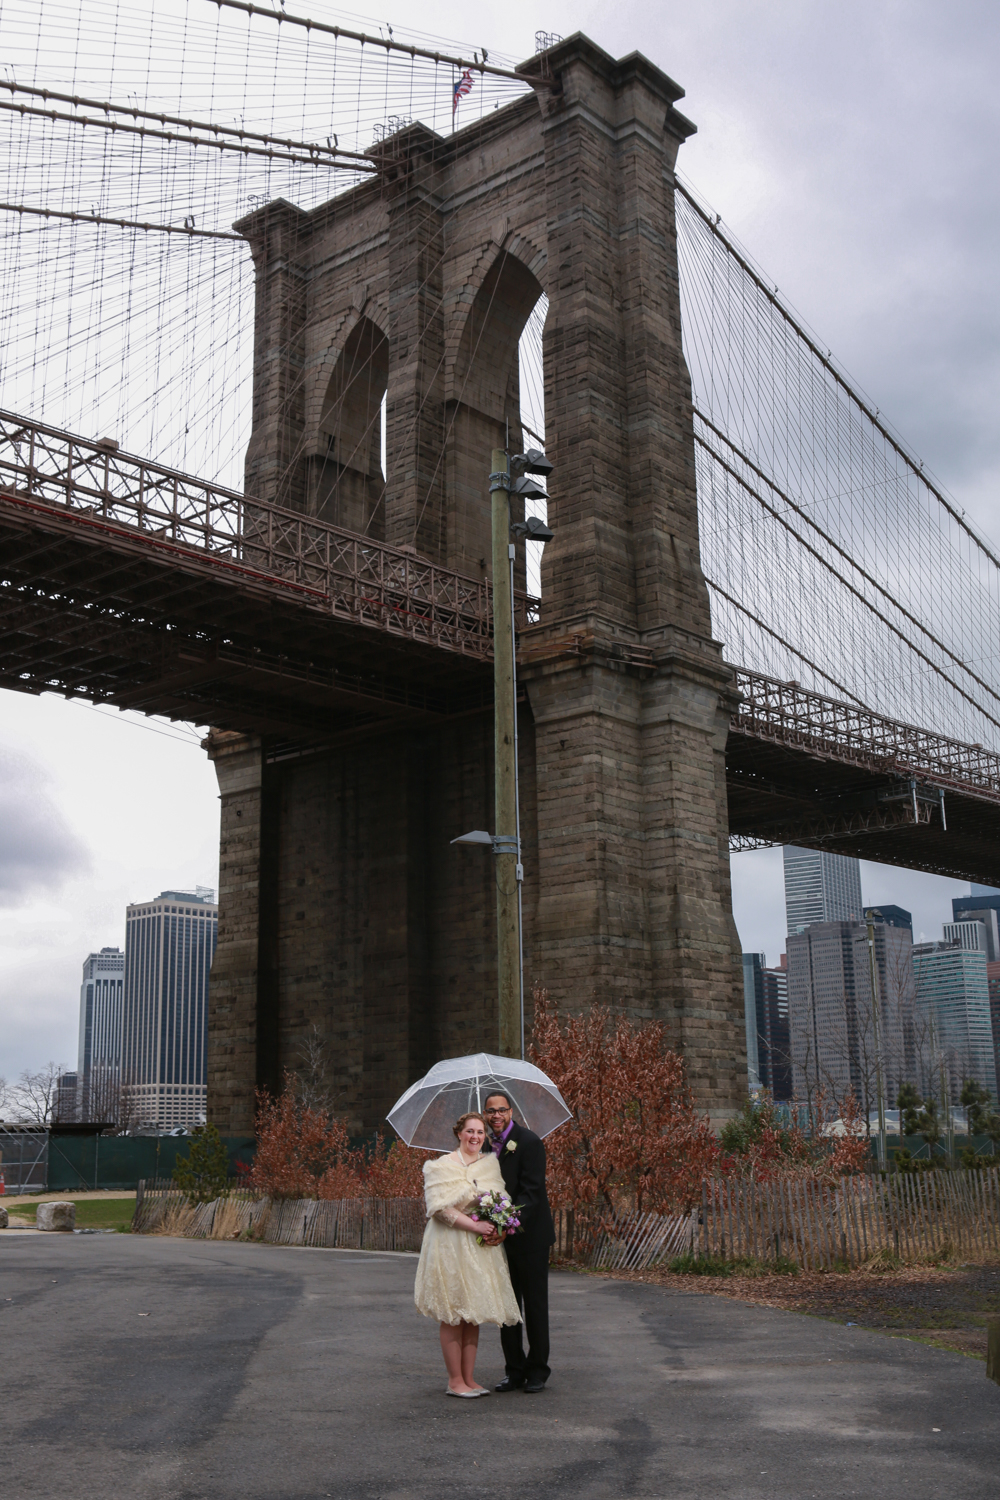 Bride and groom under bridge in NYC